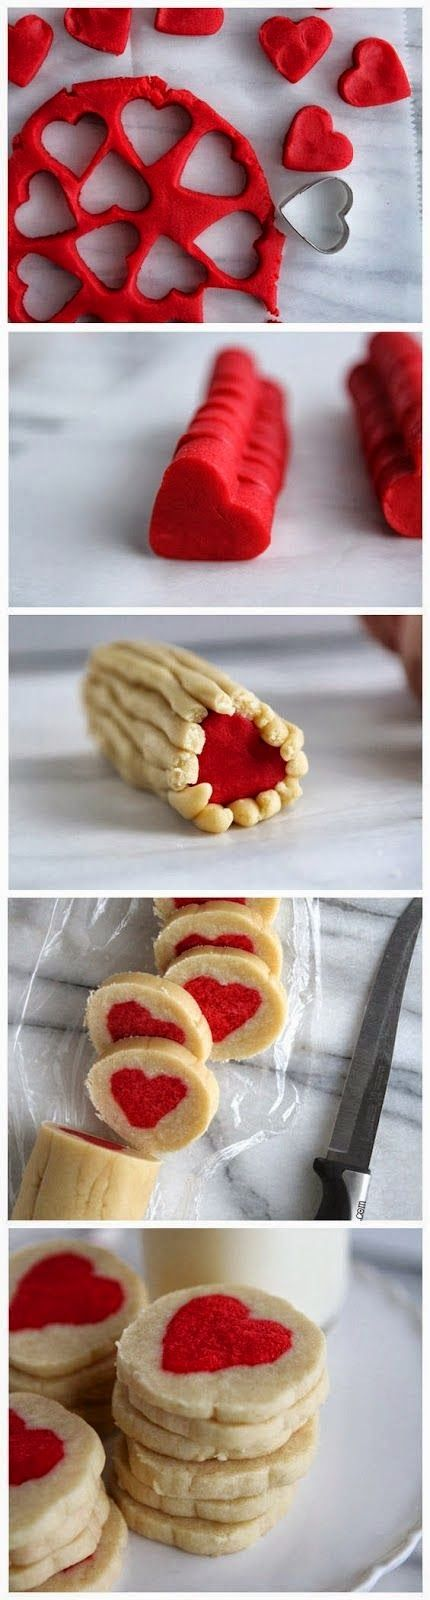 all-food-drink: Slice n' Bake Valentine Heart Cookies. I'll have to try this but I'll use Earth Balance spread instead of the butter. What a cute idea!